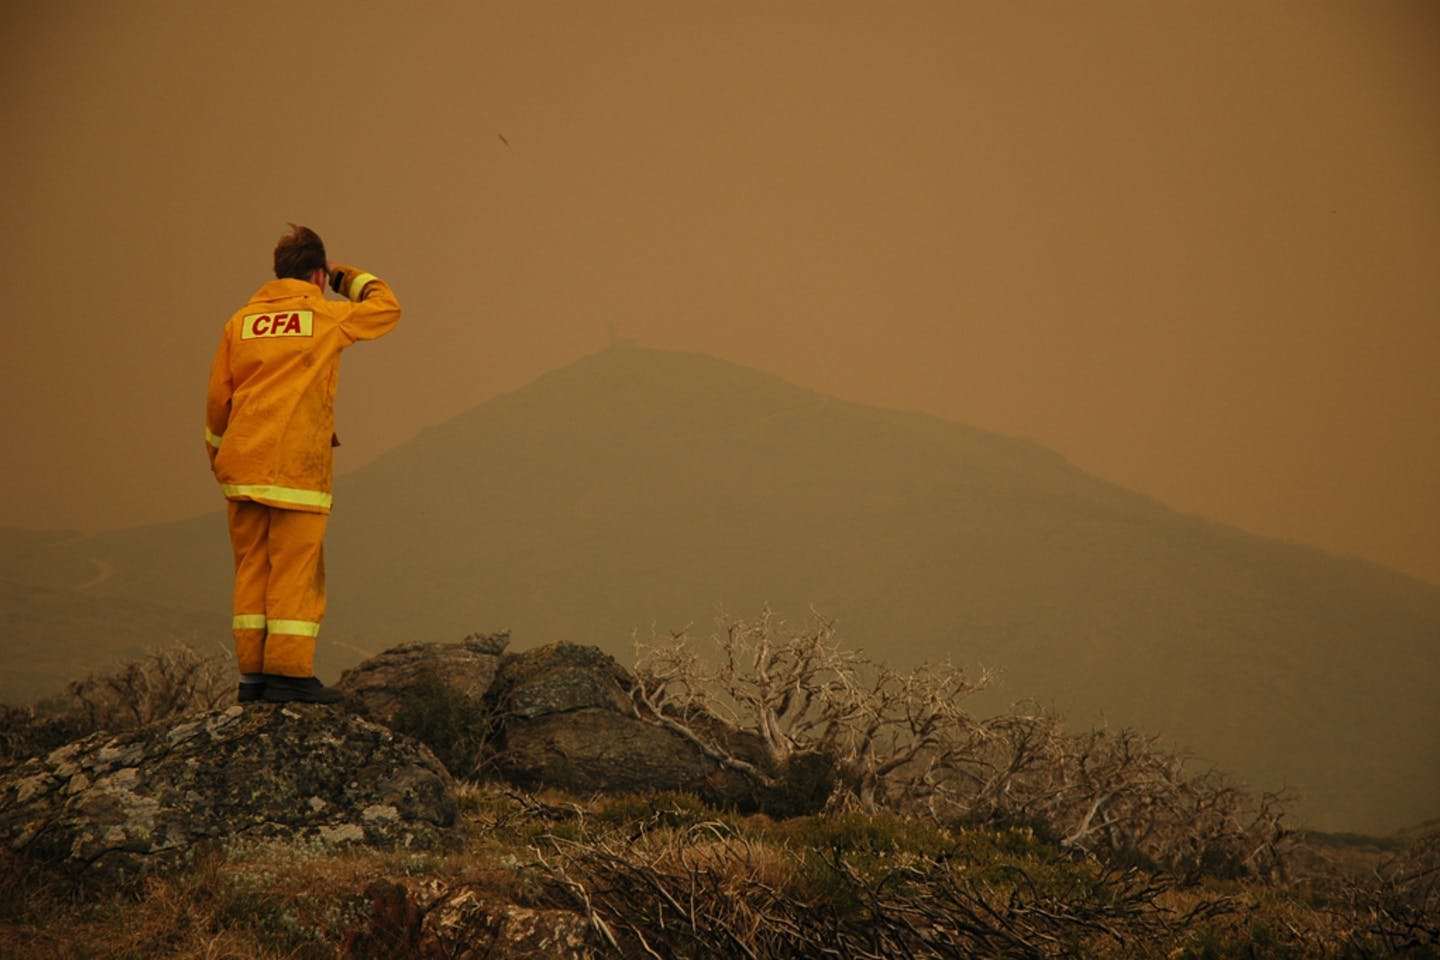 A firefighter in Falls Creek, Victoria, Australia looks across the smog generated by wildfires.